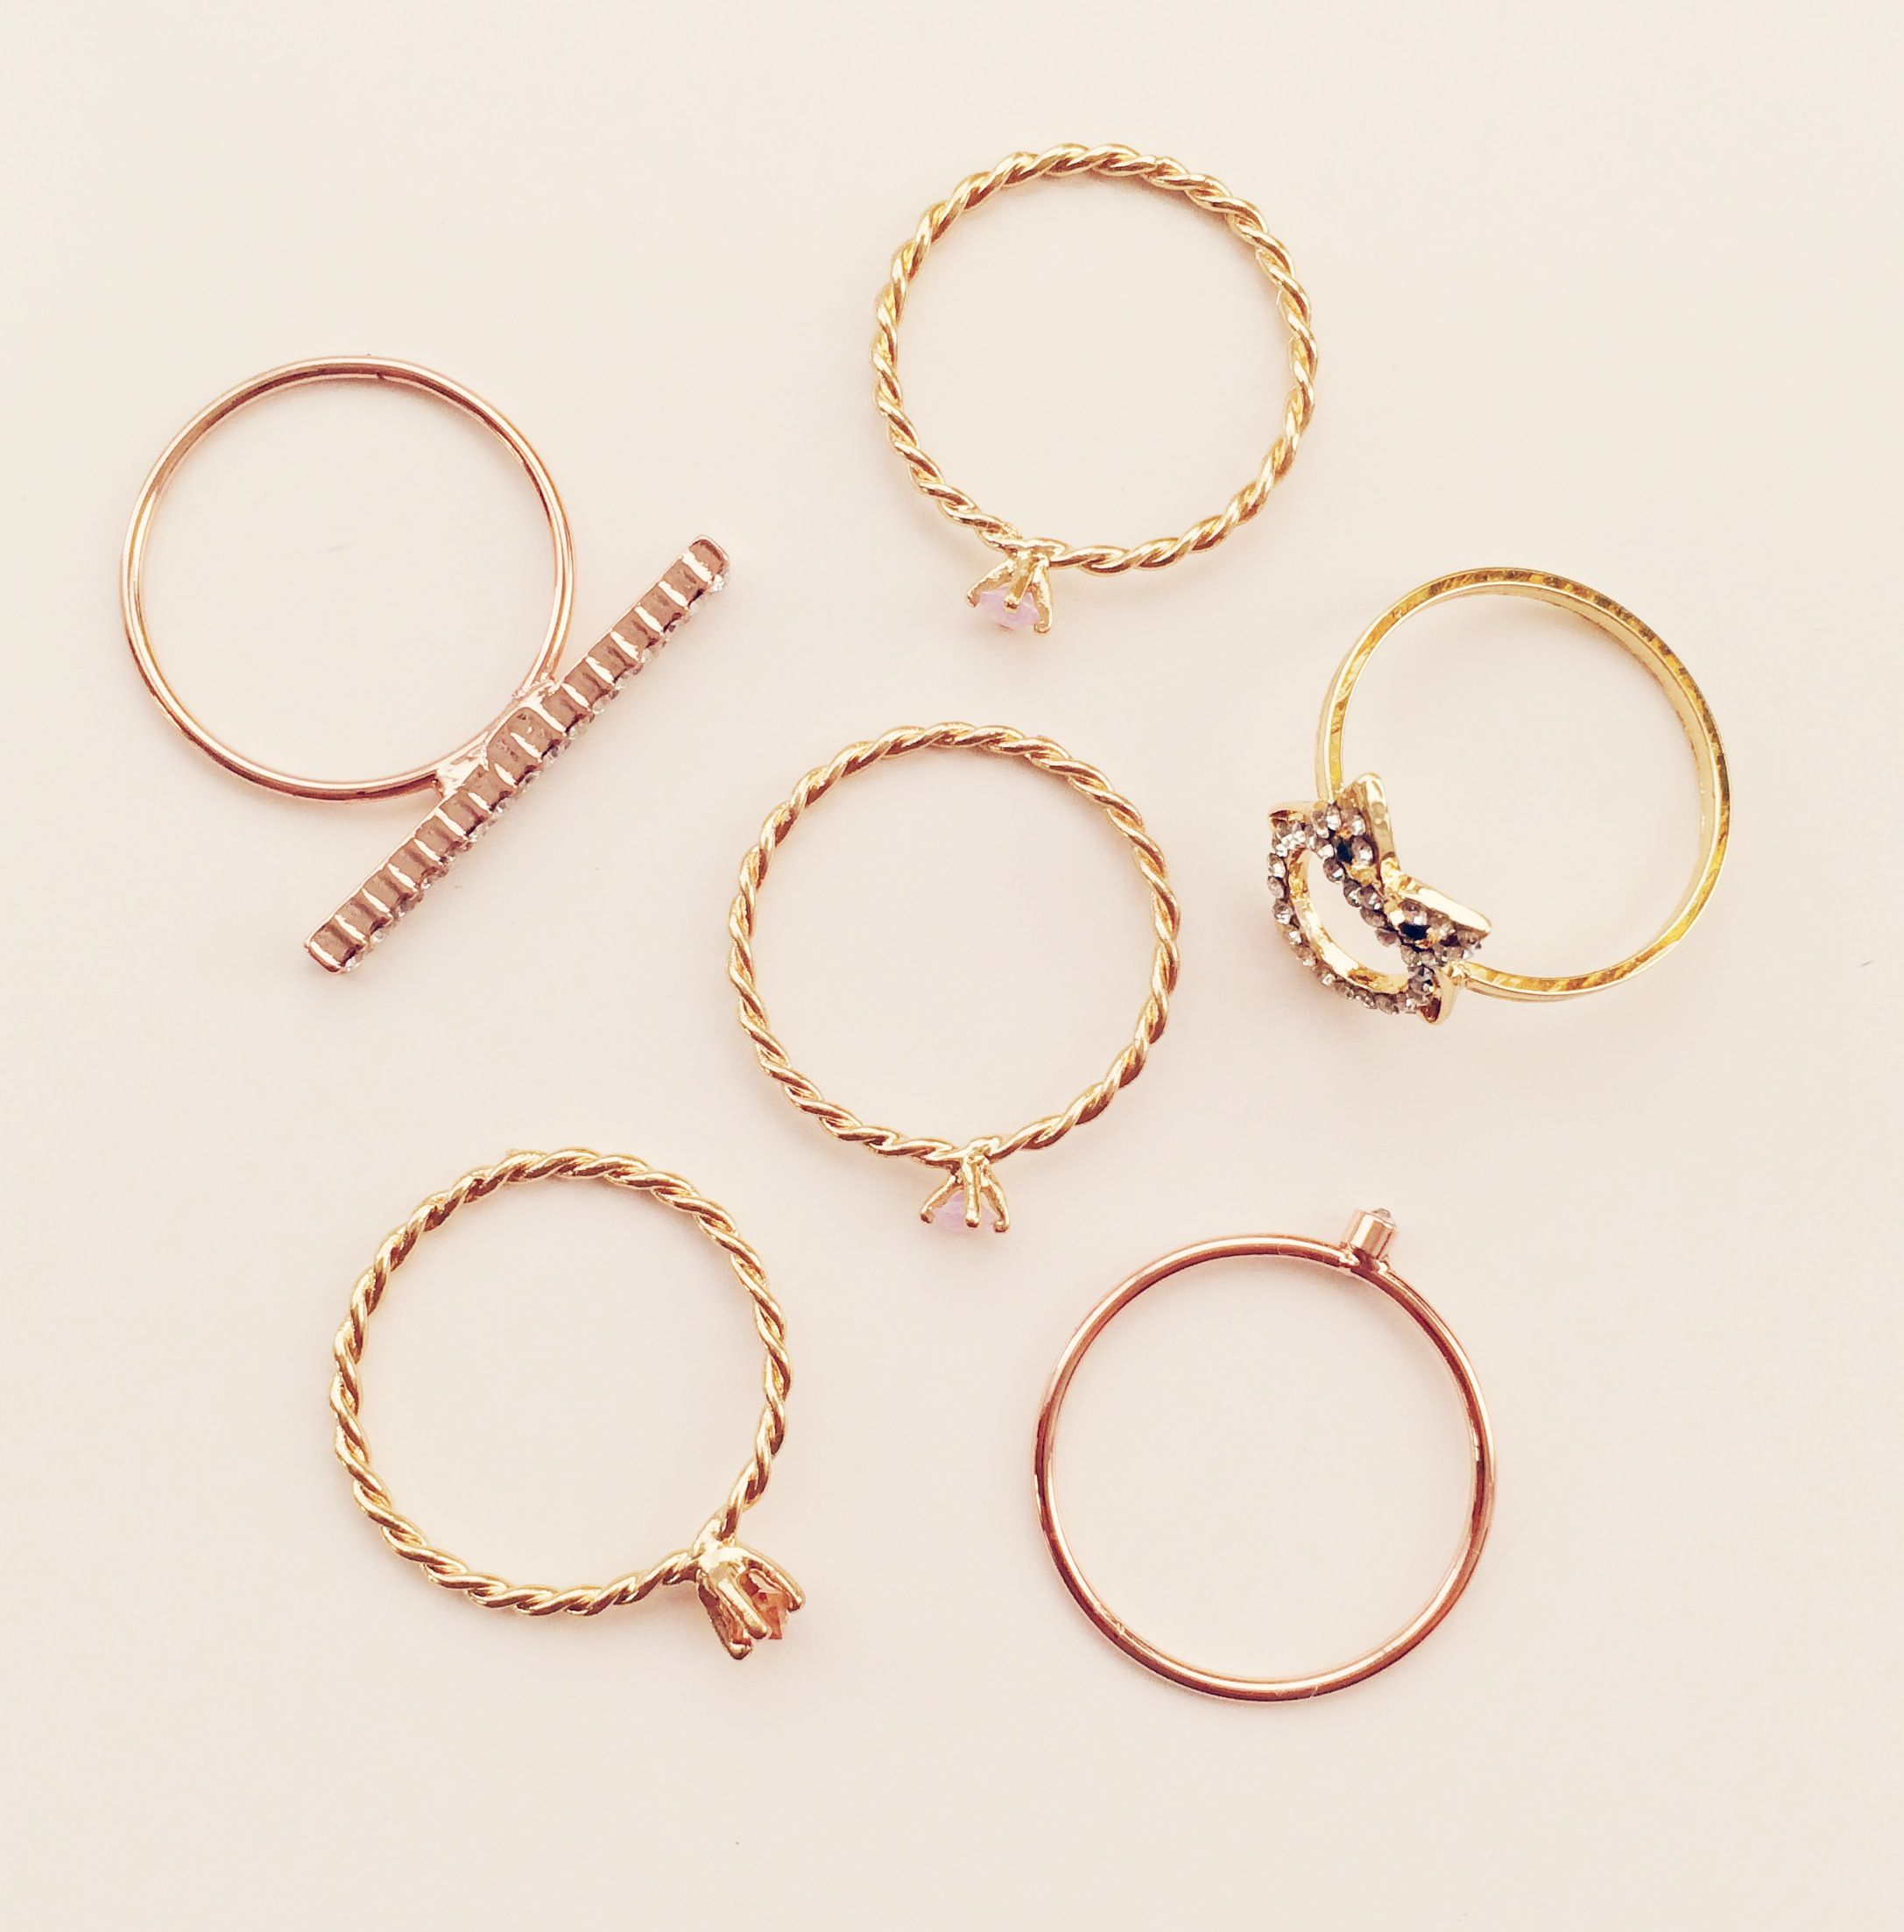 Kohls Jewelry Box Entrancing Lc Lauren Conrad For Kohl's Stackable Rings $780  My Style And